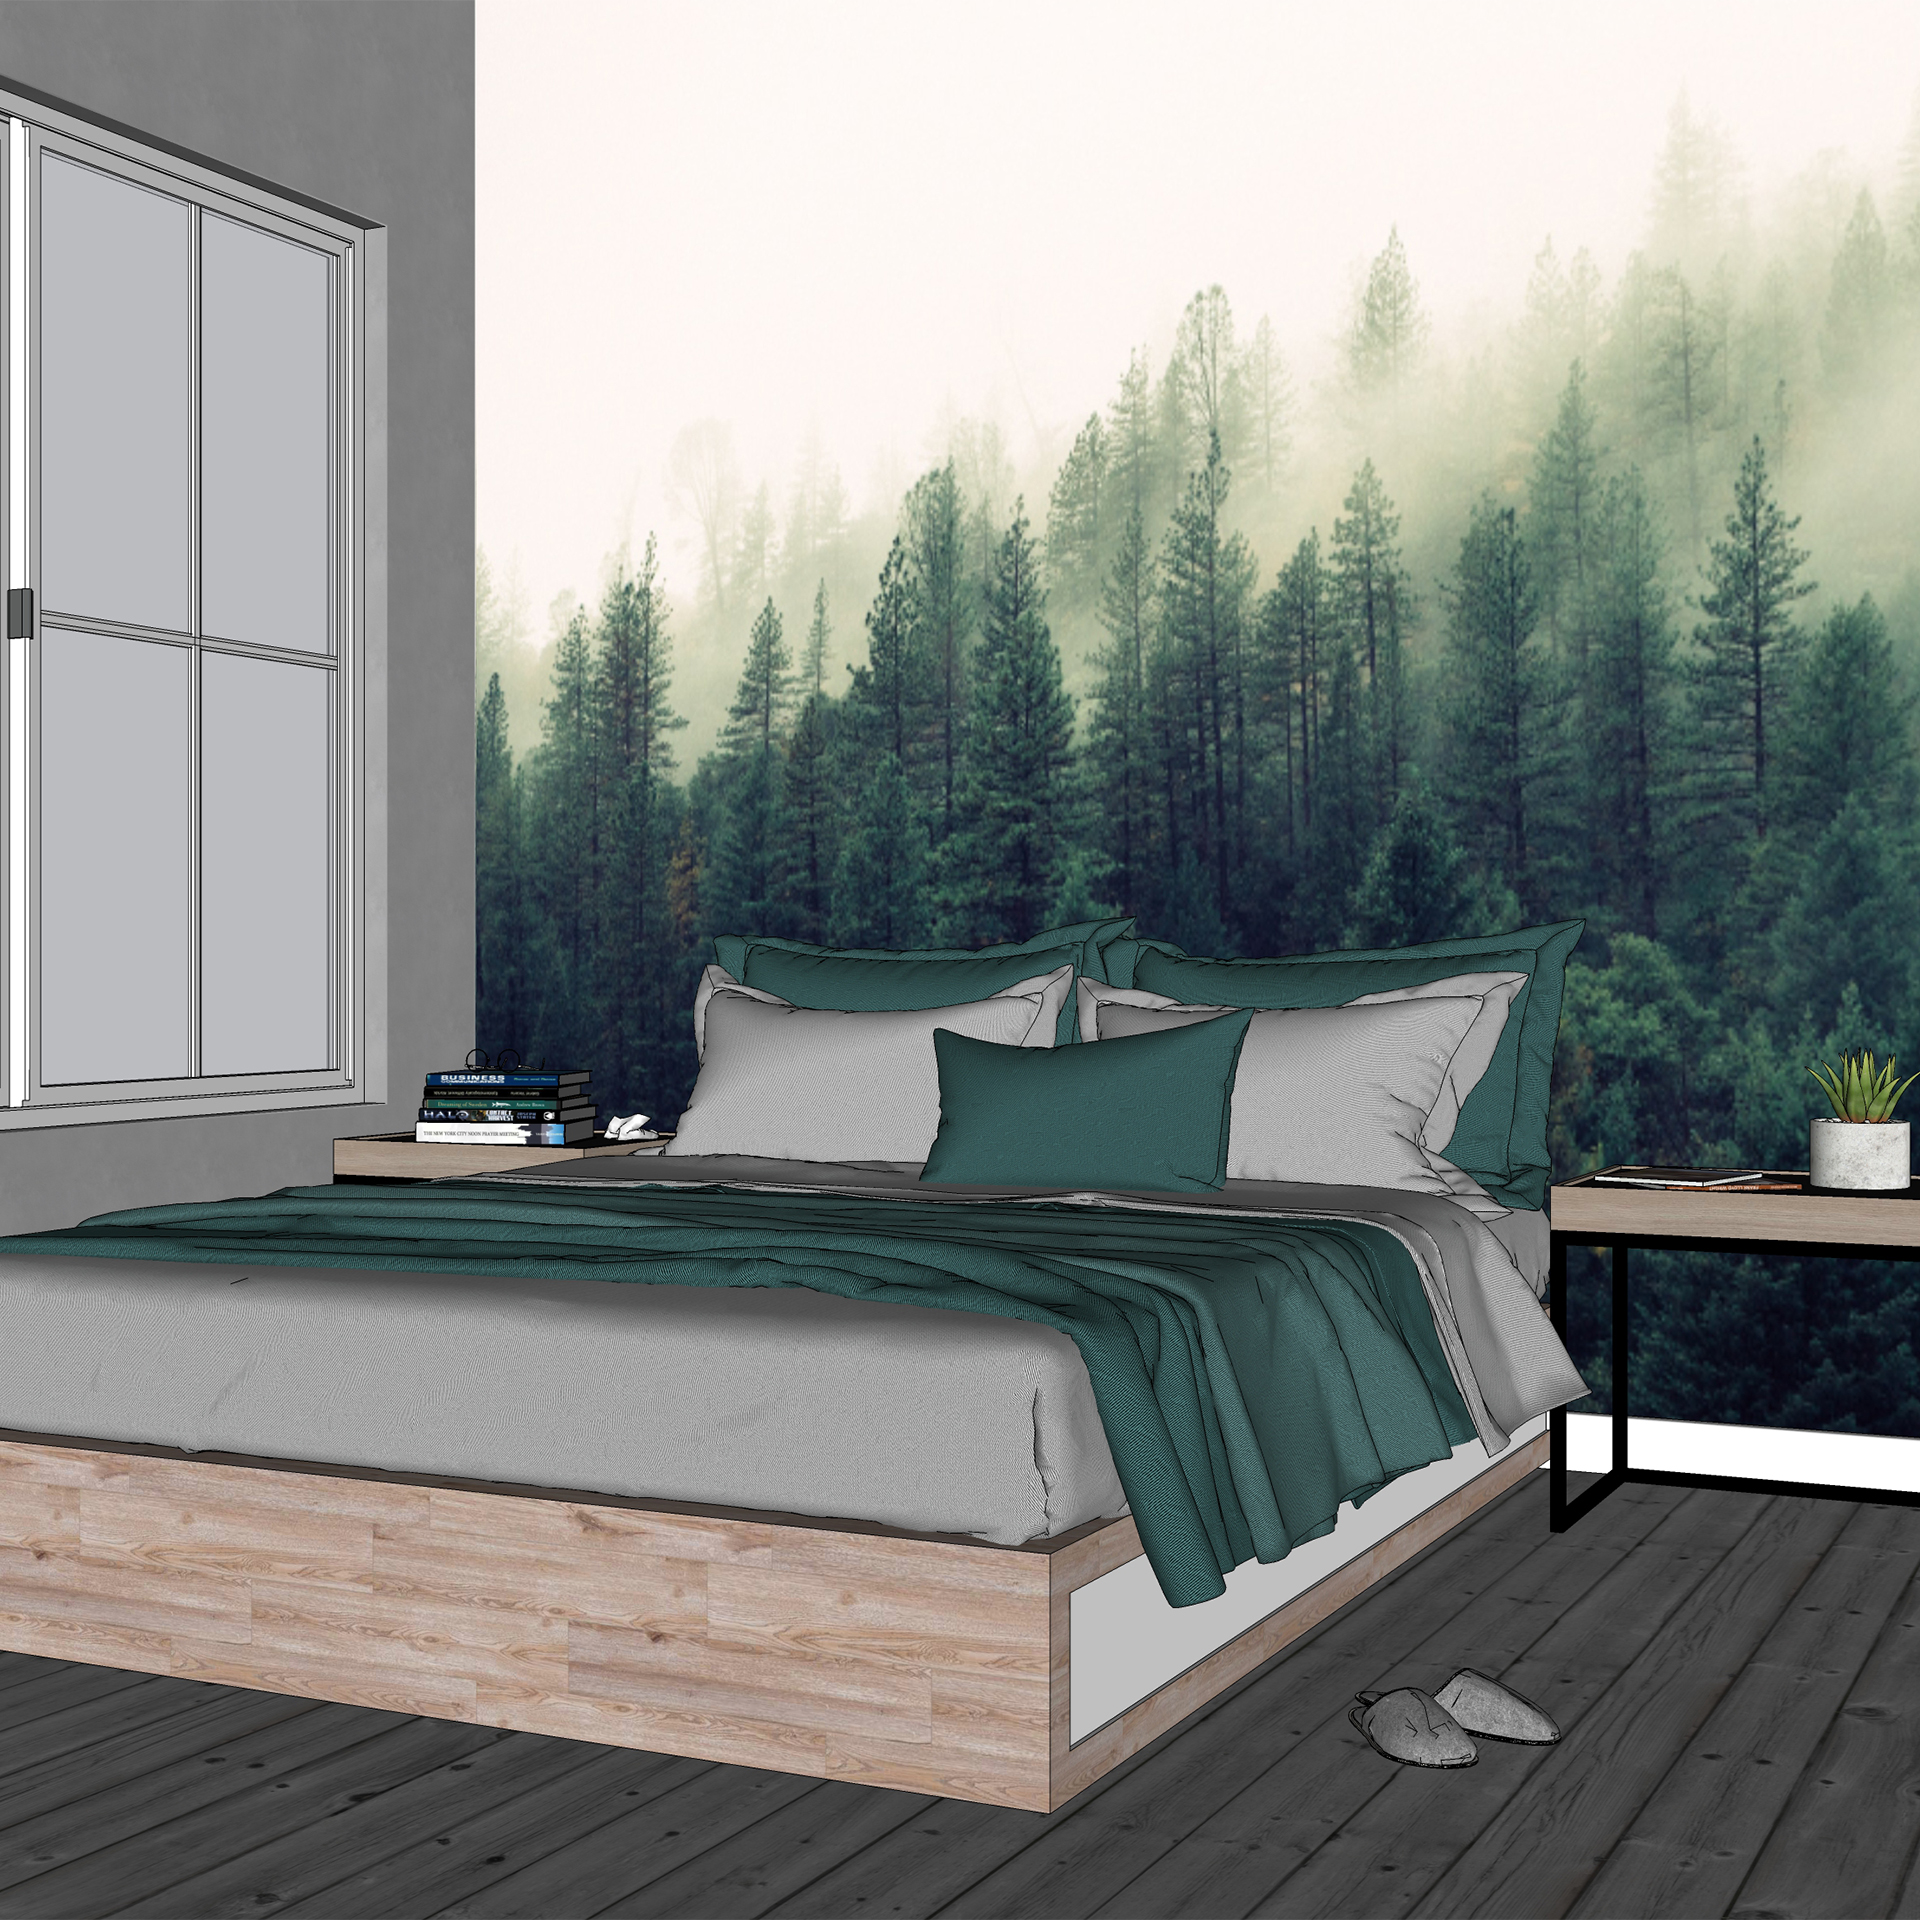 Modern Bedroom SKP Screenshot 2 Square.jpg